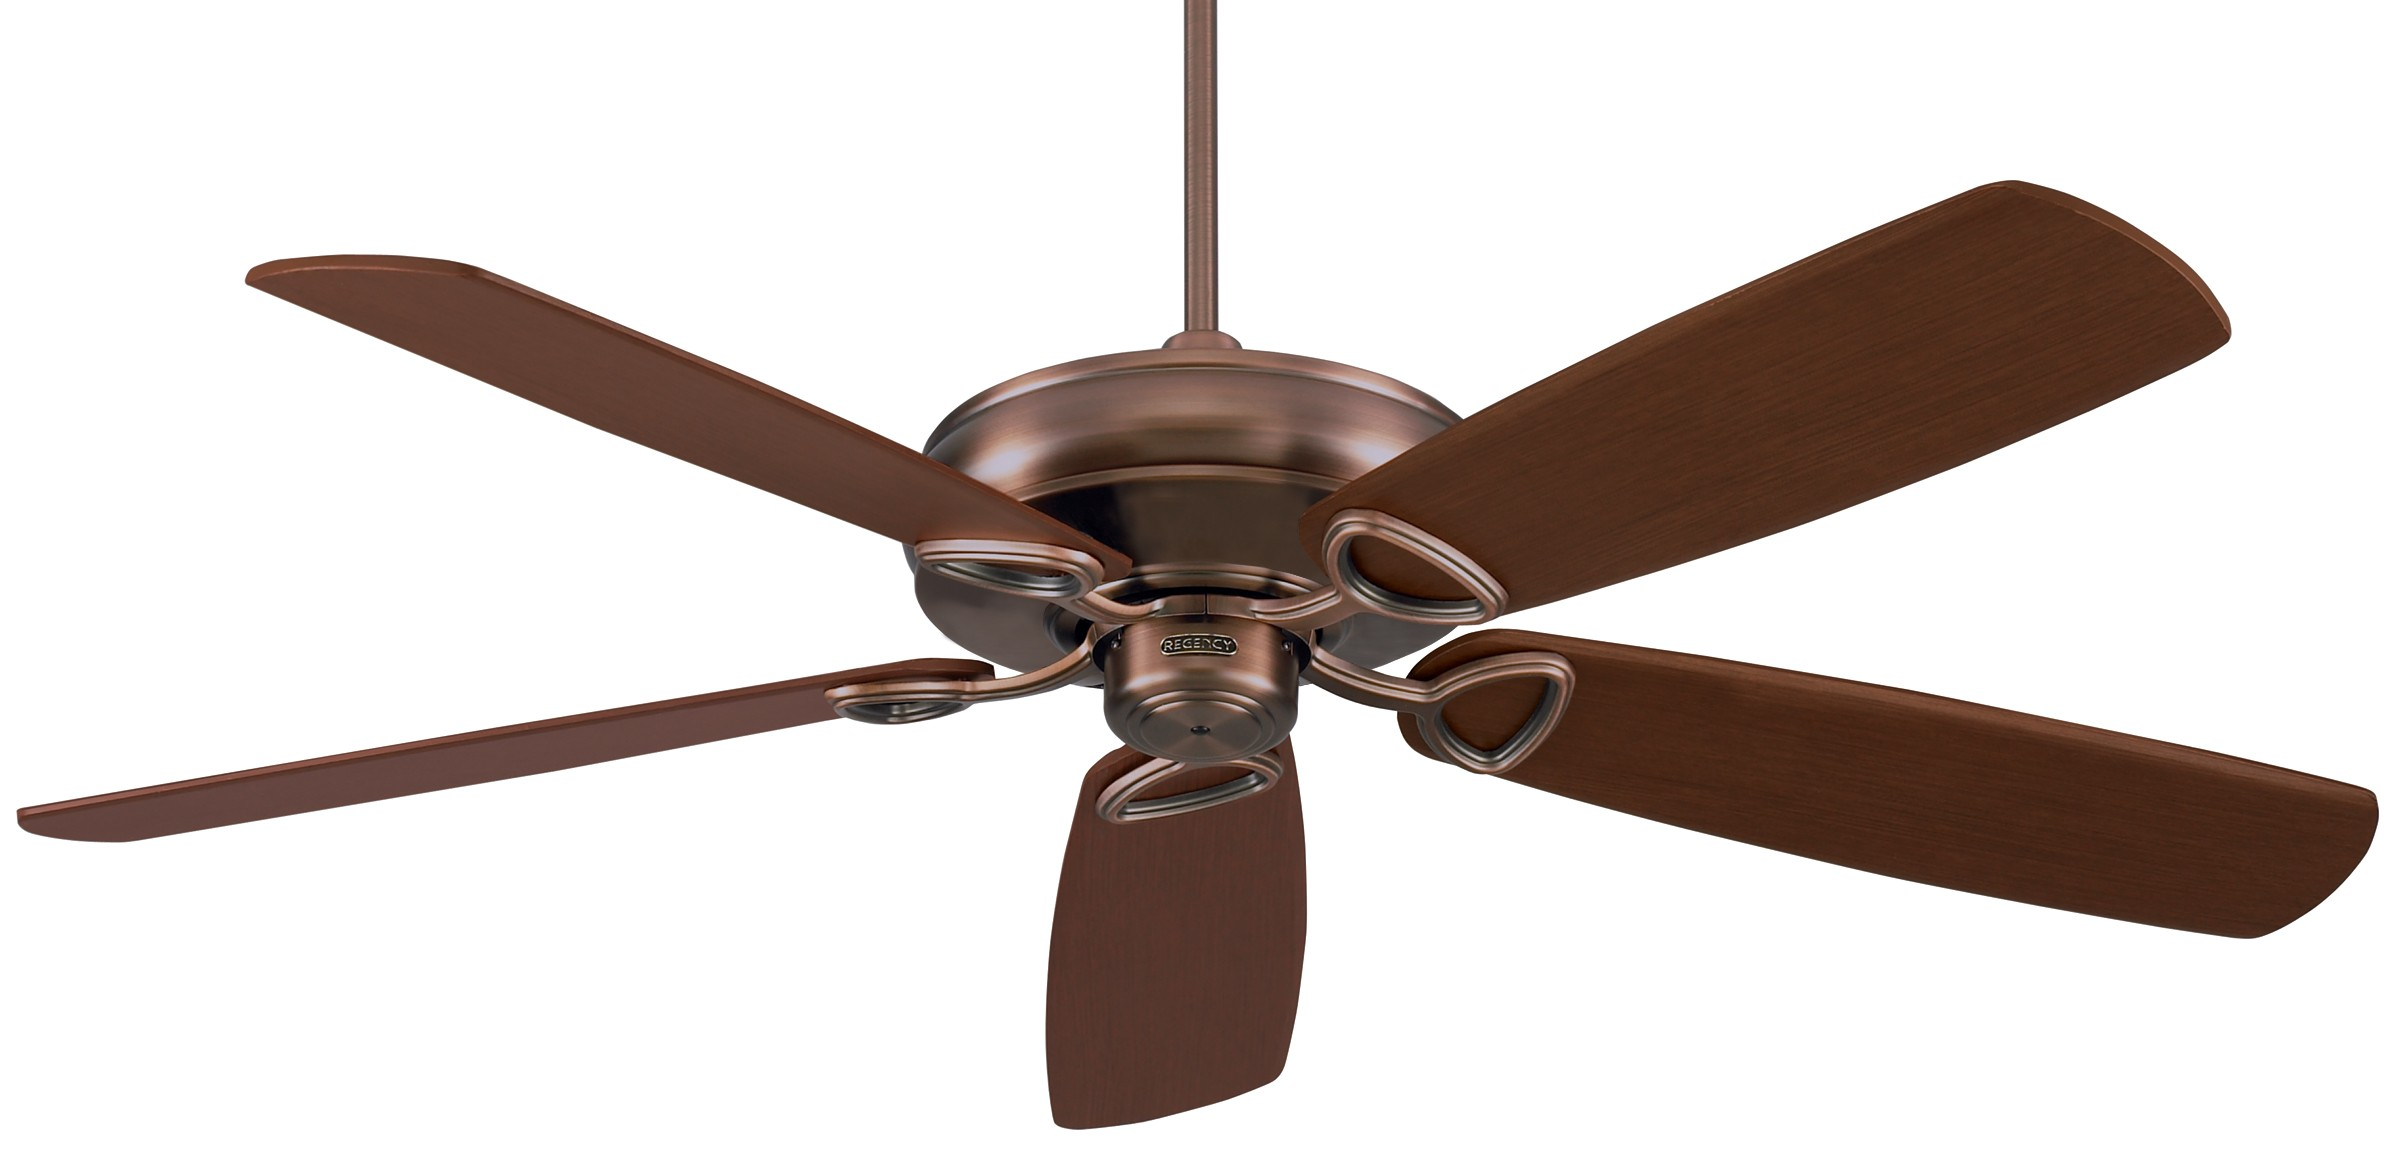 Matthews Home Supply Ceiling Fans And Garage Doors